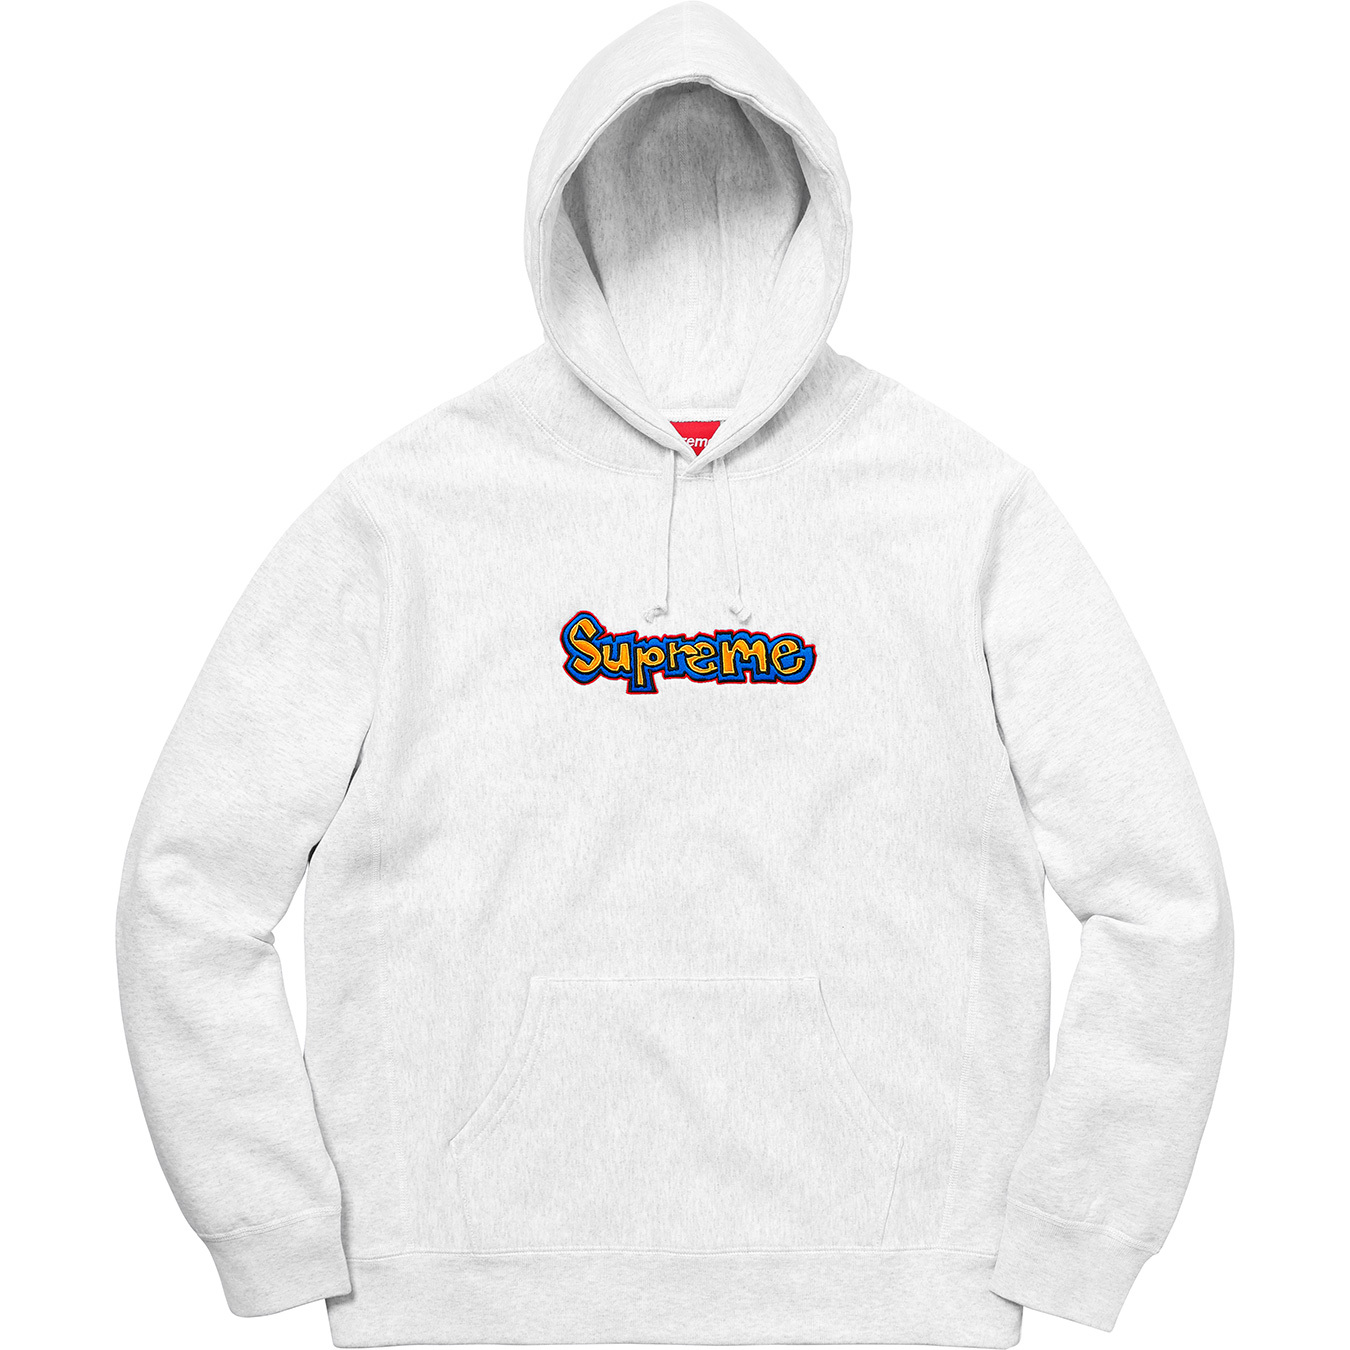 supreme-18ss-spring-summer-gonz-logo-hooded-sweatshirt